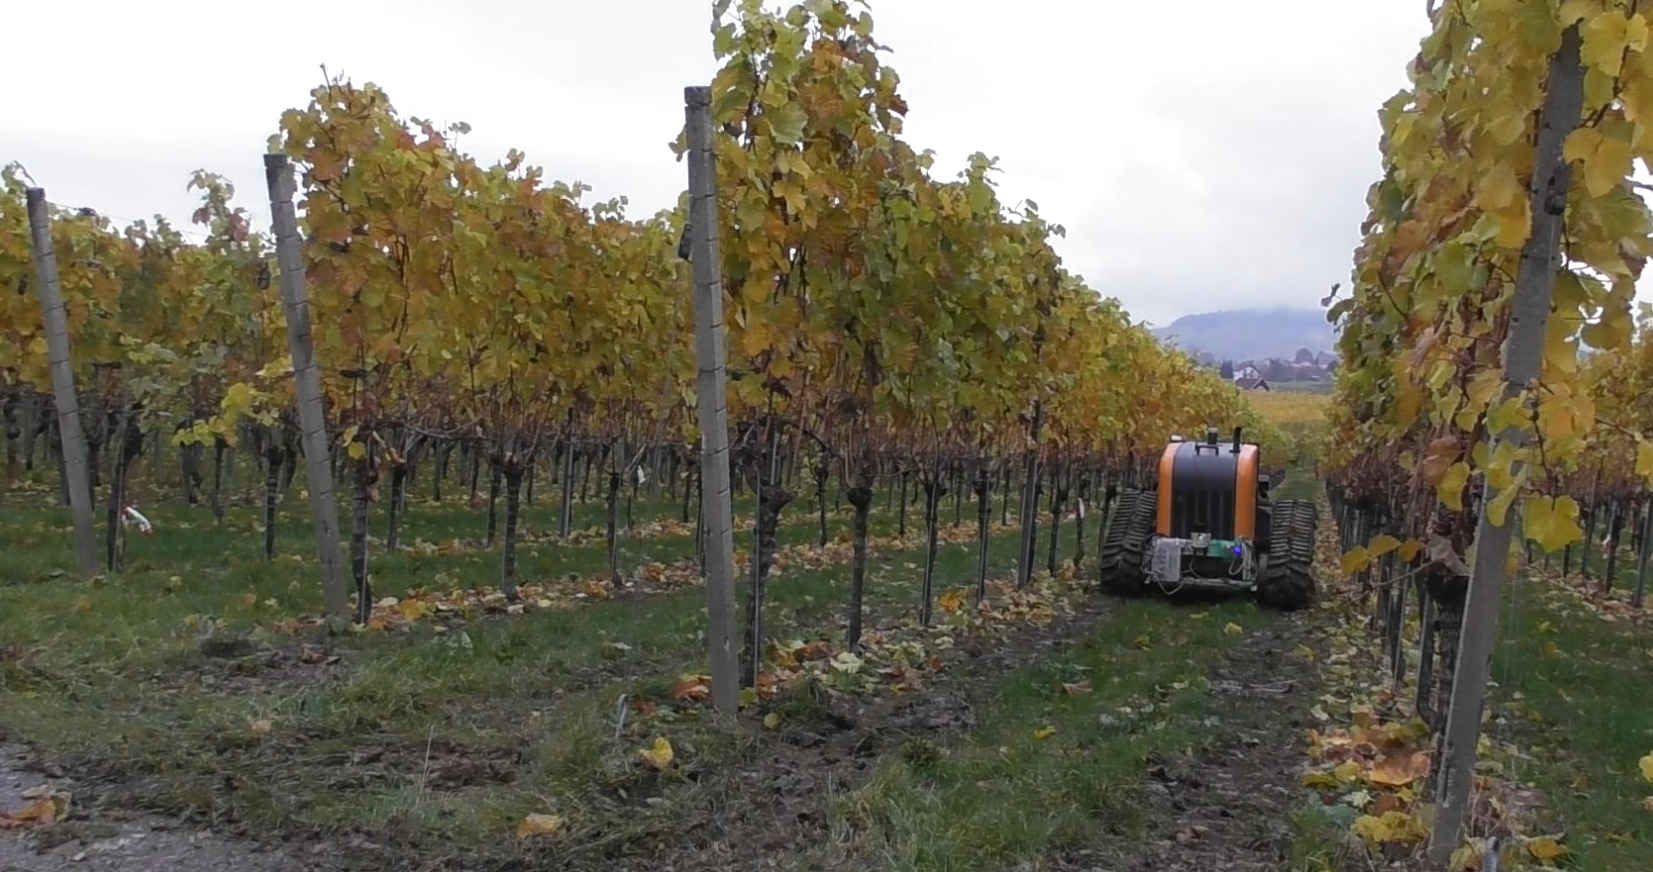 The vineyard crawler while working in a vineyard